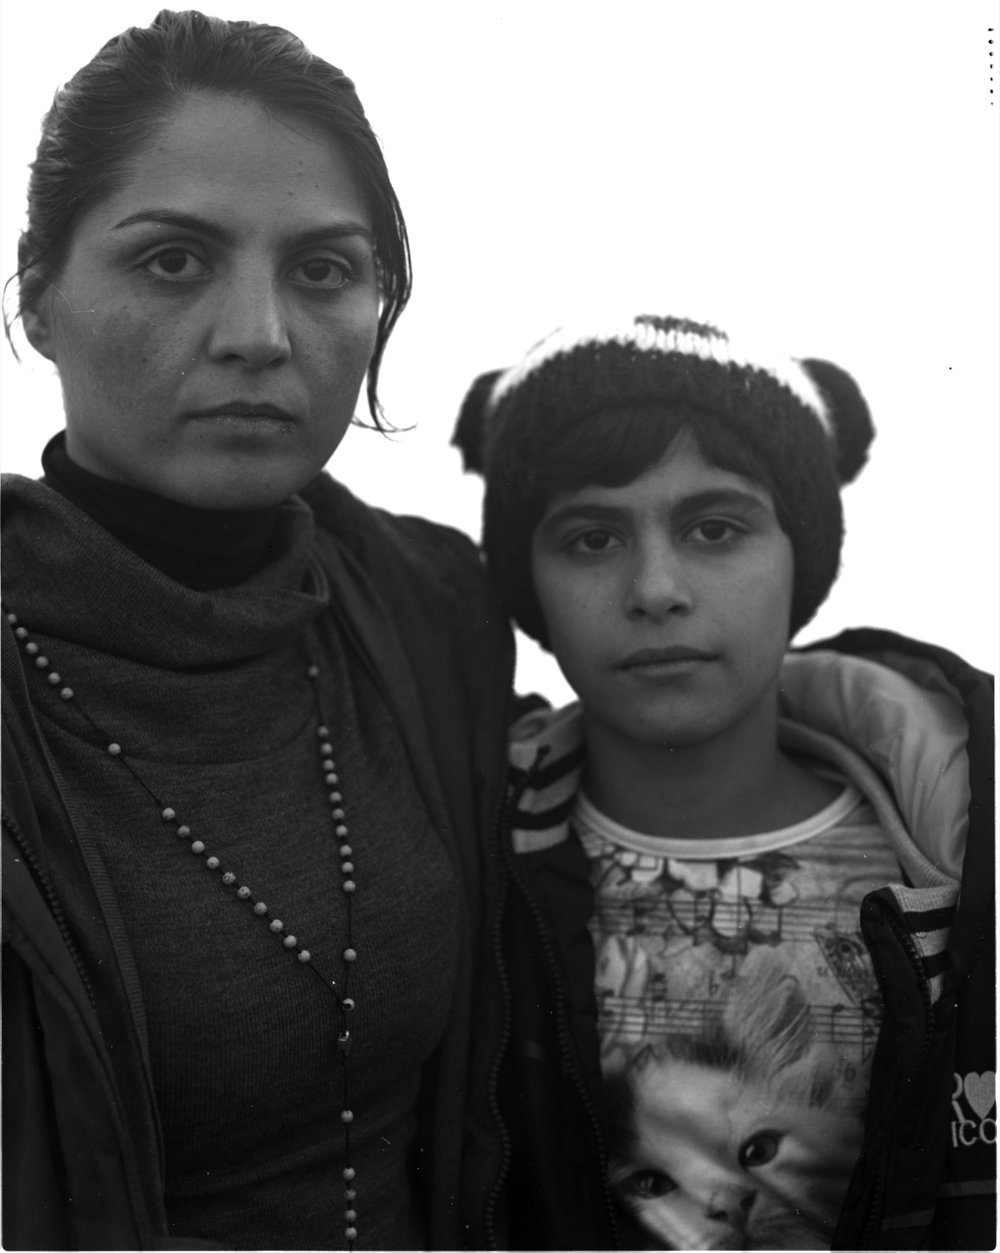 Nadia and her daughter Cassandane, from Herat, Afghanistan. Nadia was married at the age of 10 to an abusive husband. She fled Afghanistan and hopes to start a new life in Europe studying film and helping improve the situation of women in Afghanistan, particularly in stopping child marriage.